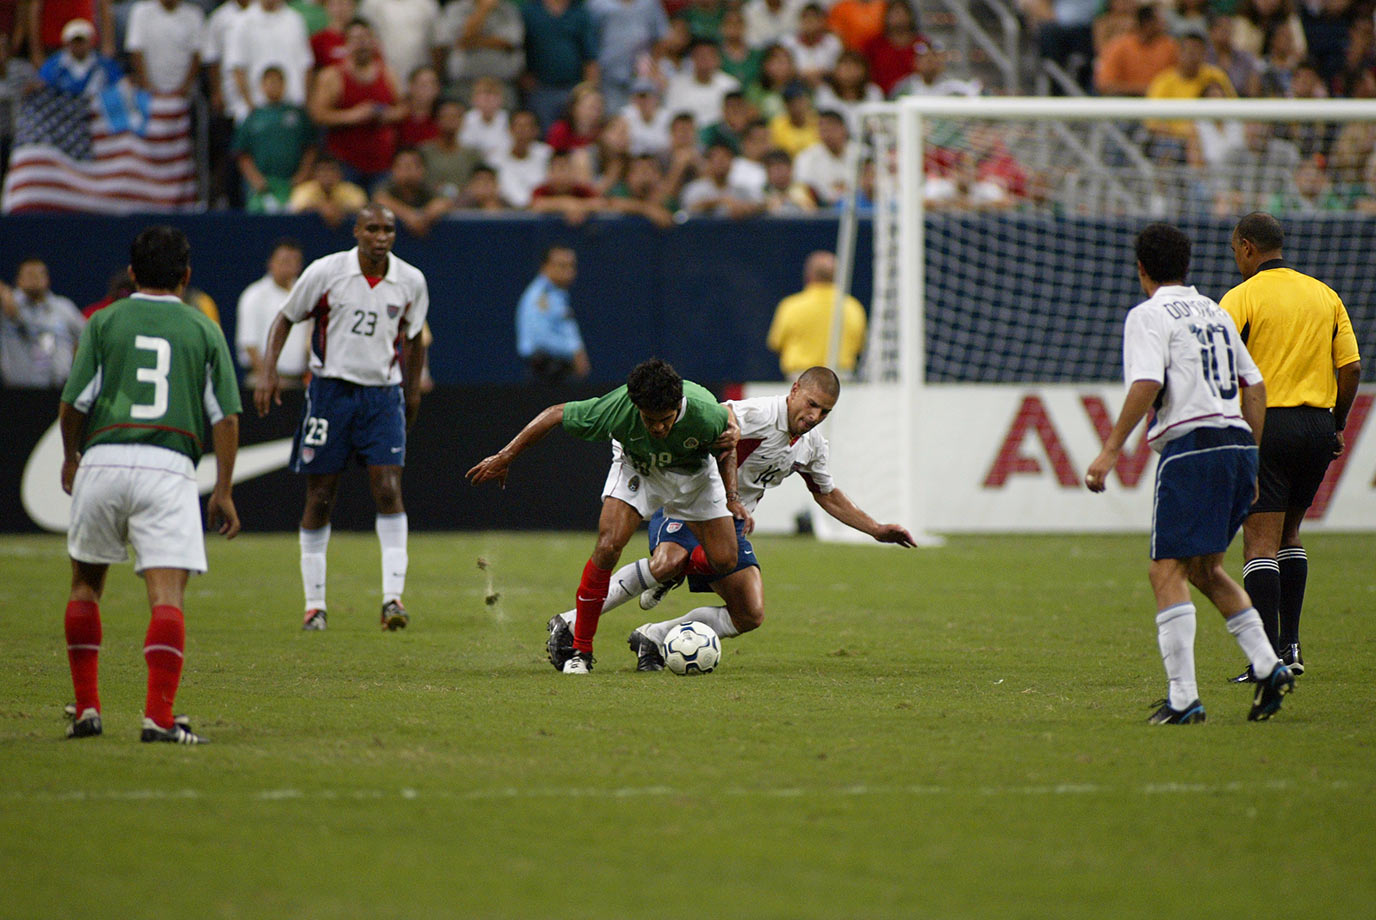 In their first meeting since the 2002 World Cup, an all-MLS squad of Americans played Mexico to a 0-0 draw in front of more than 69,000 people in Houston.